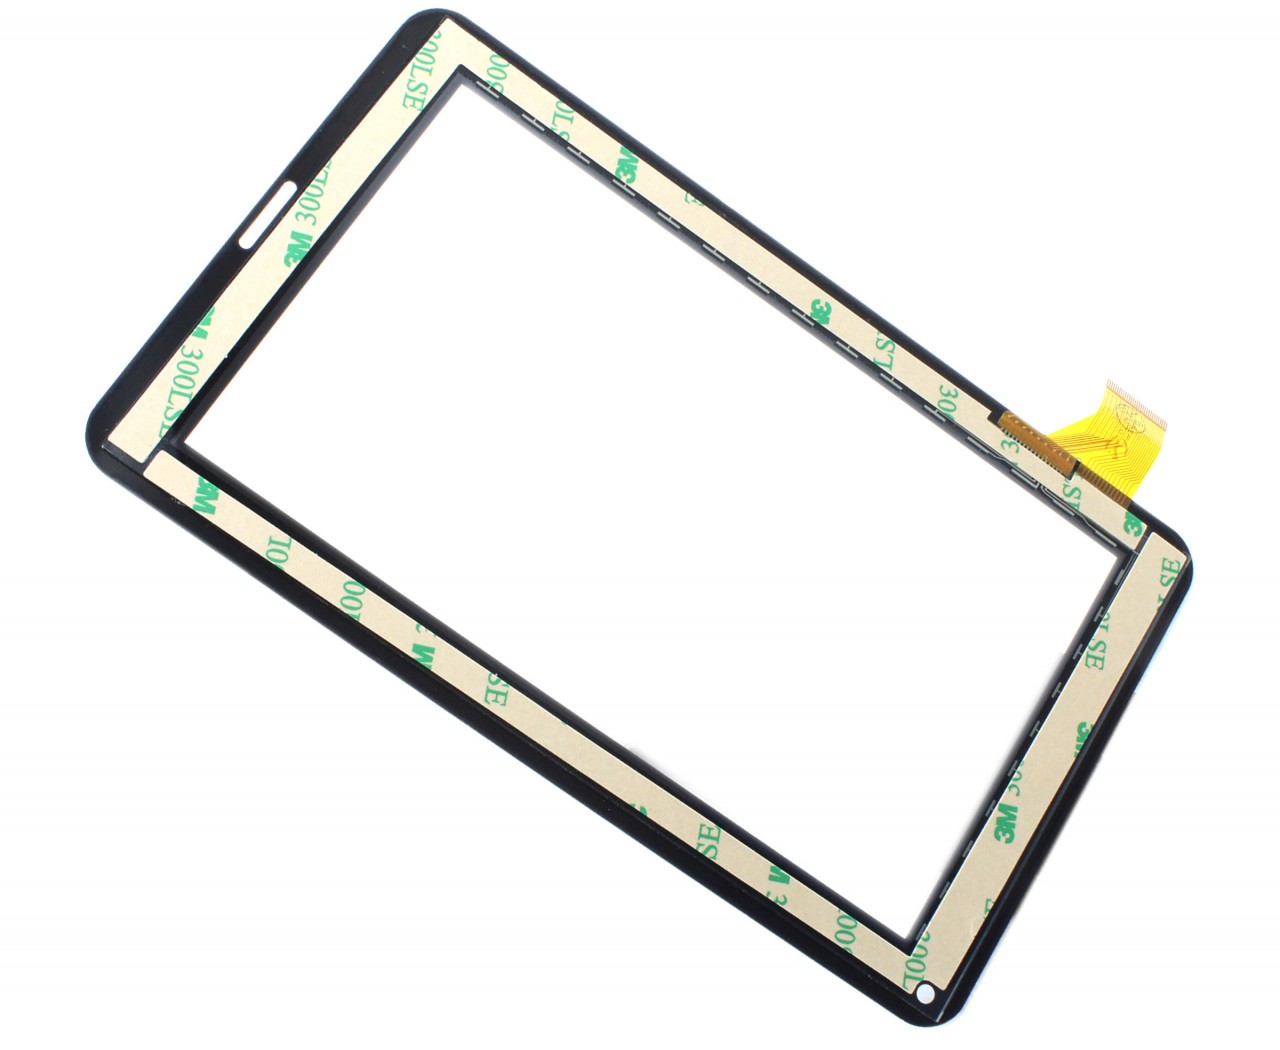 Touchscreen Digitizer Serioux S702 S702TAB Geam Sticla Tableta imagine powerlaptop.ro 2021